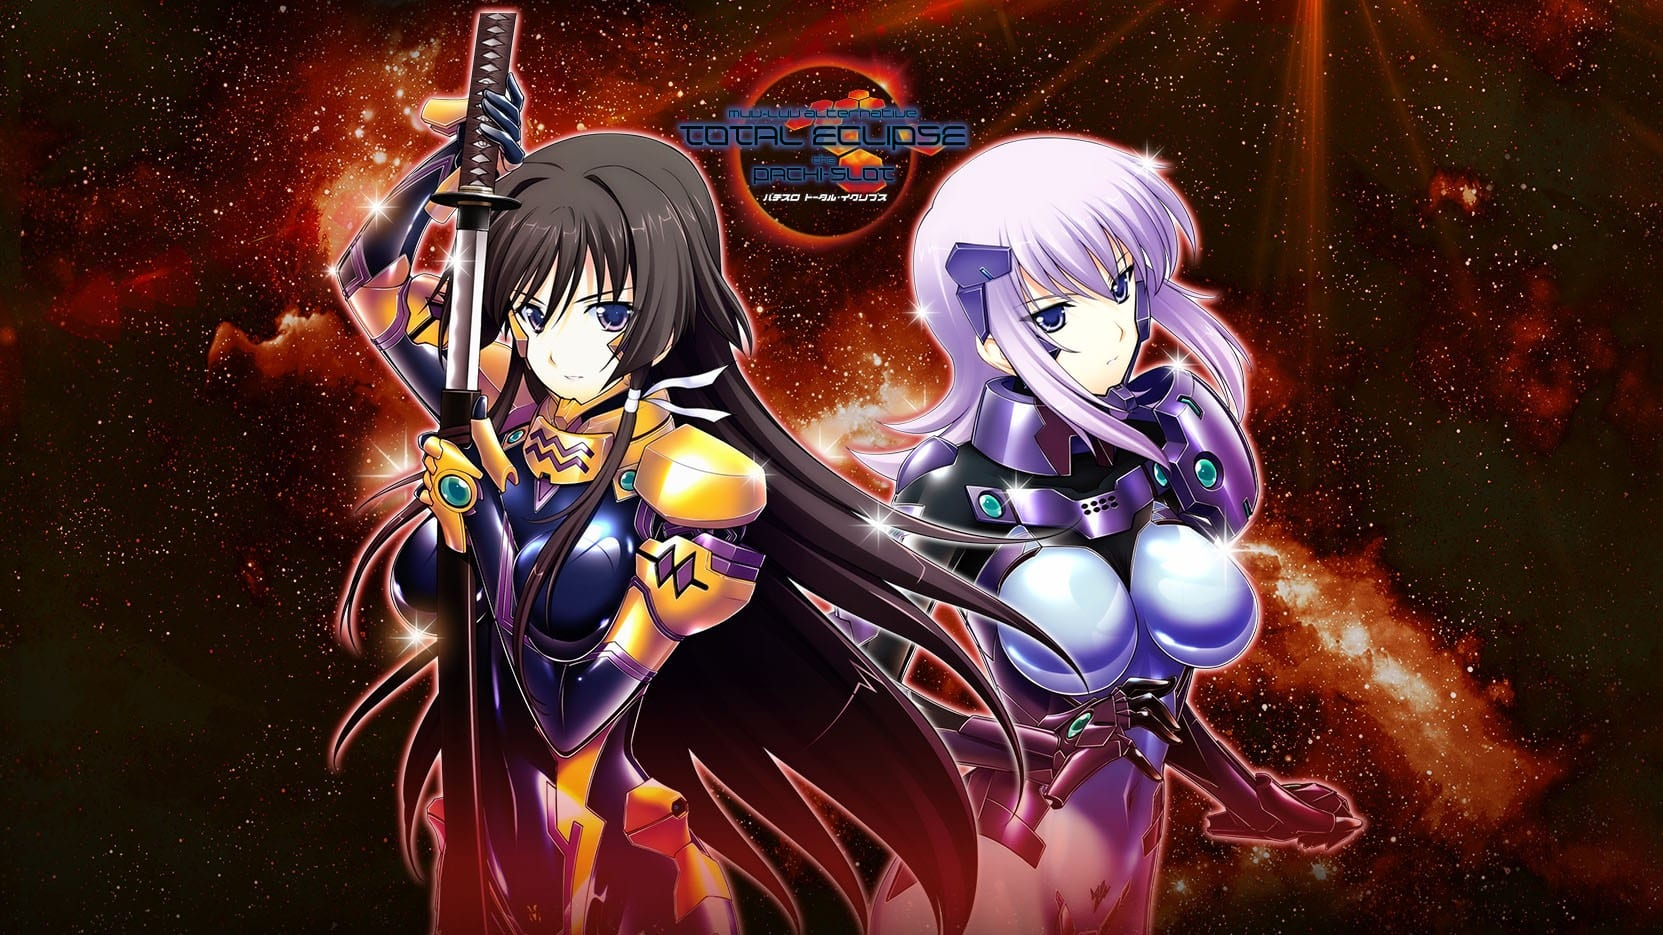 Muv-Luv Alternative: Total Eclipse (2012)(TV Series)(Complete)